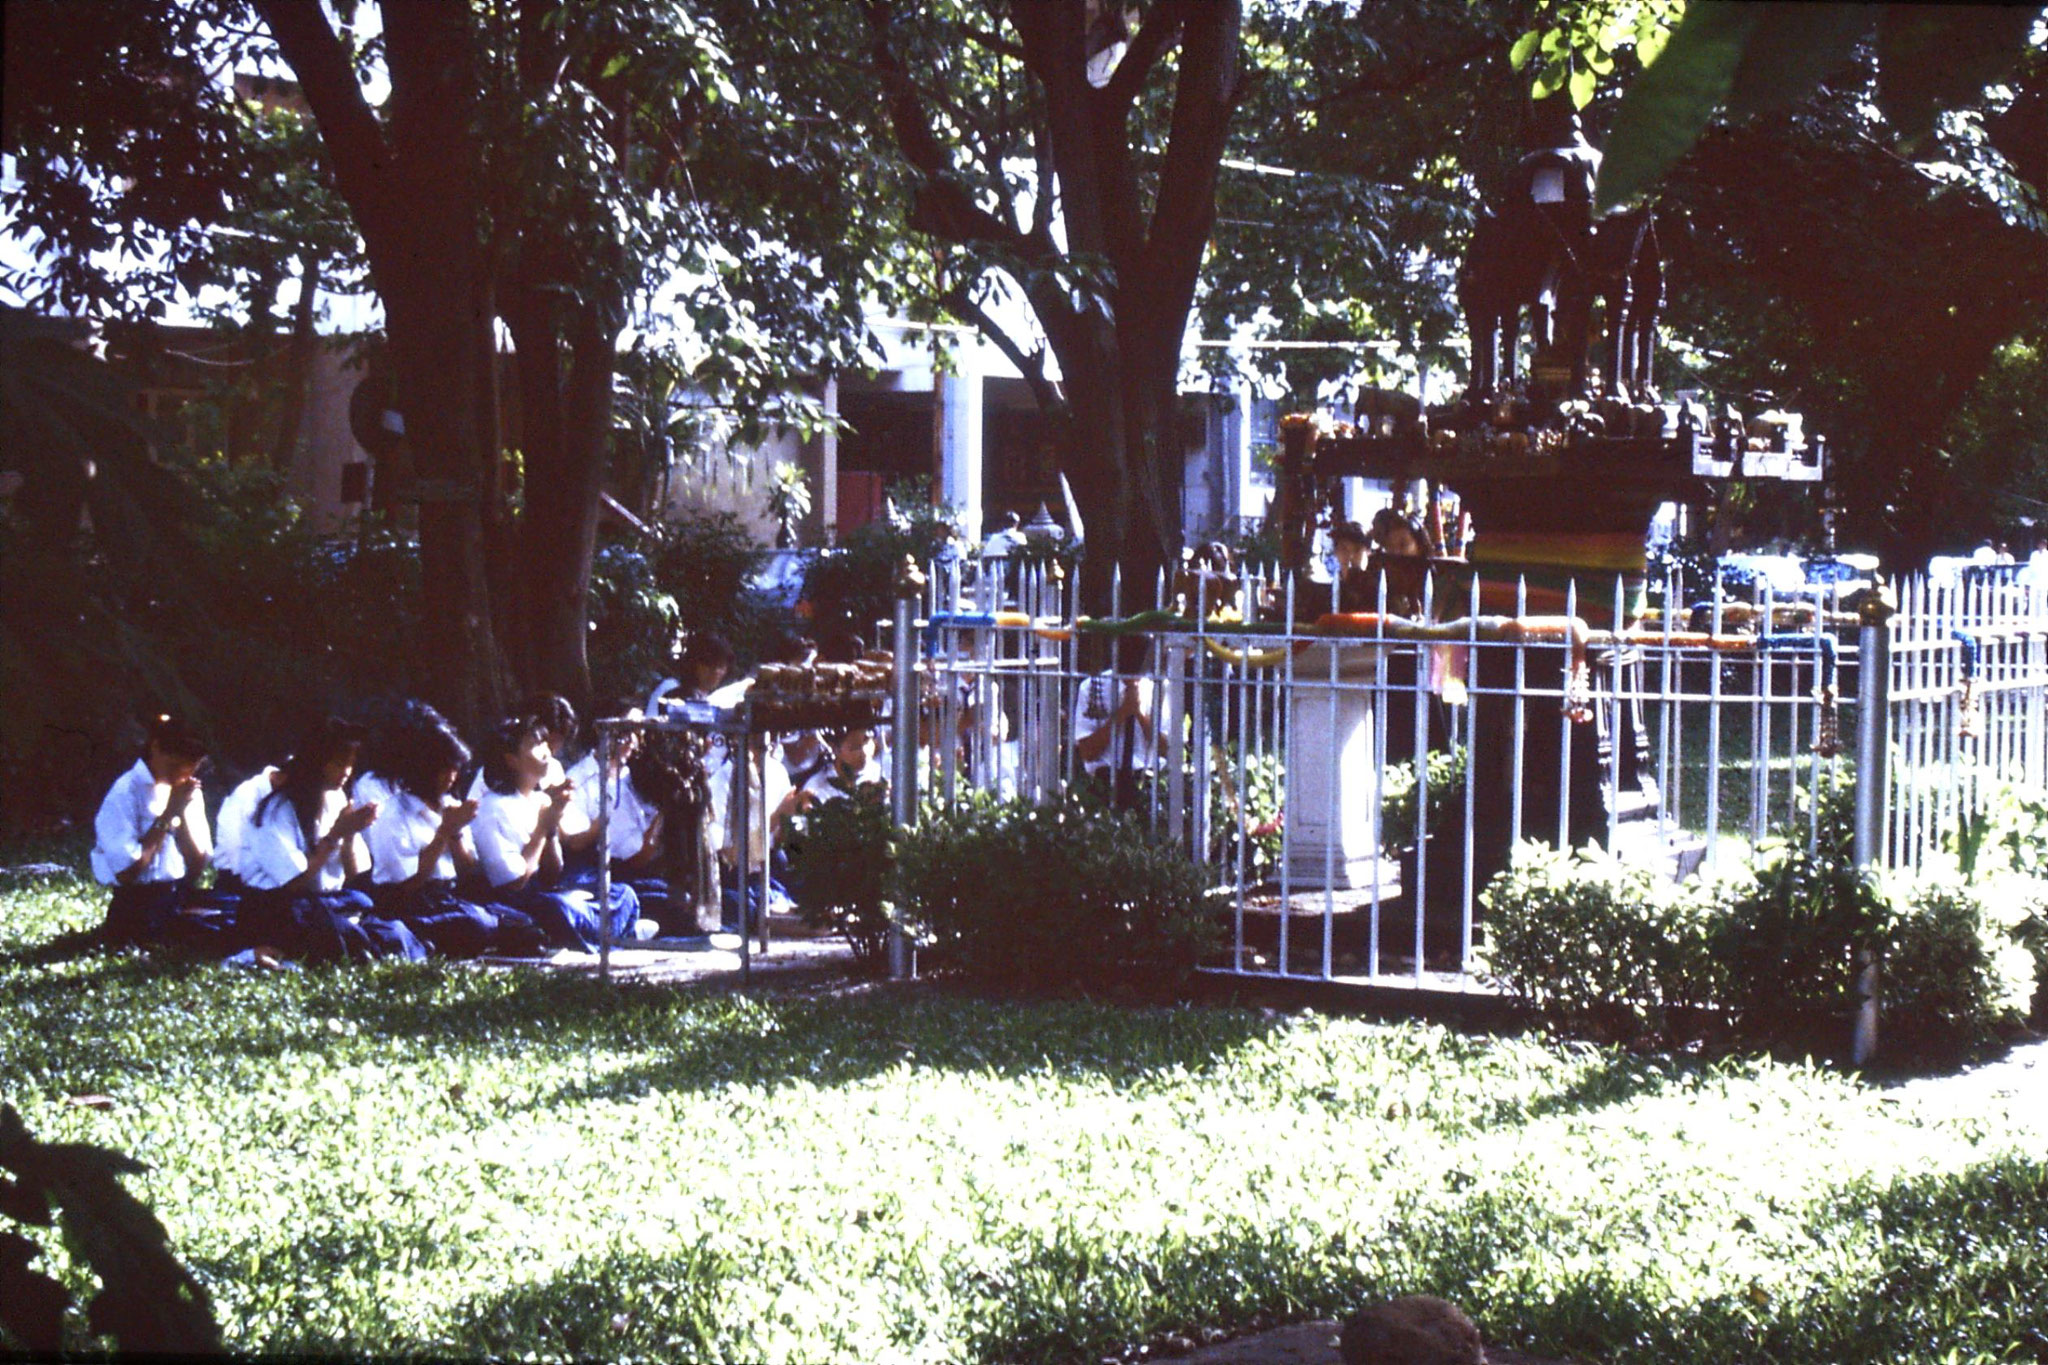 15/6/1990: 9: Bangkok students praying